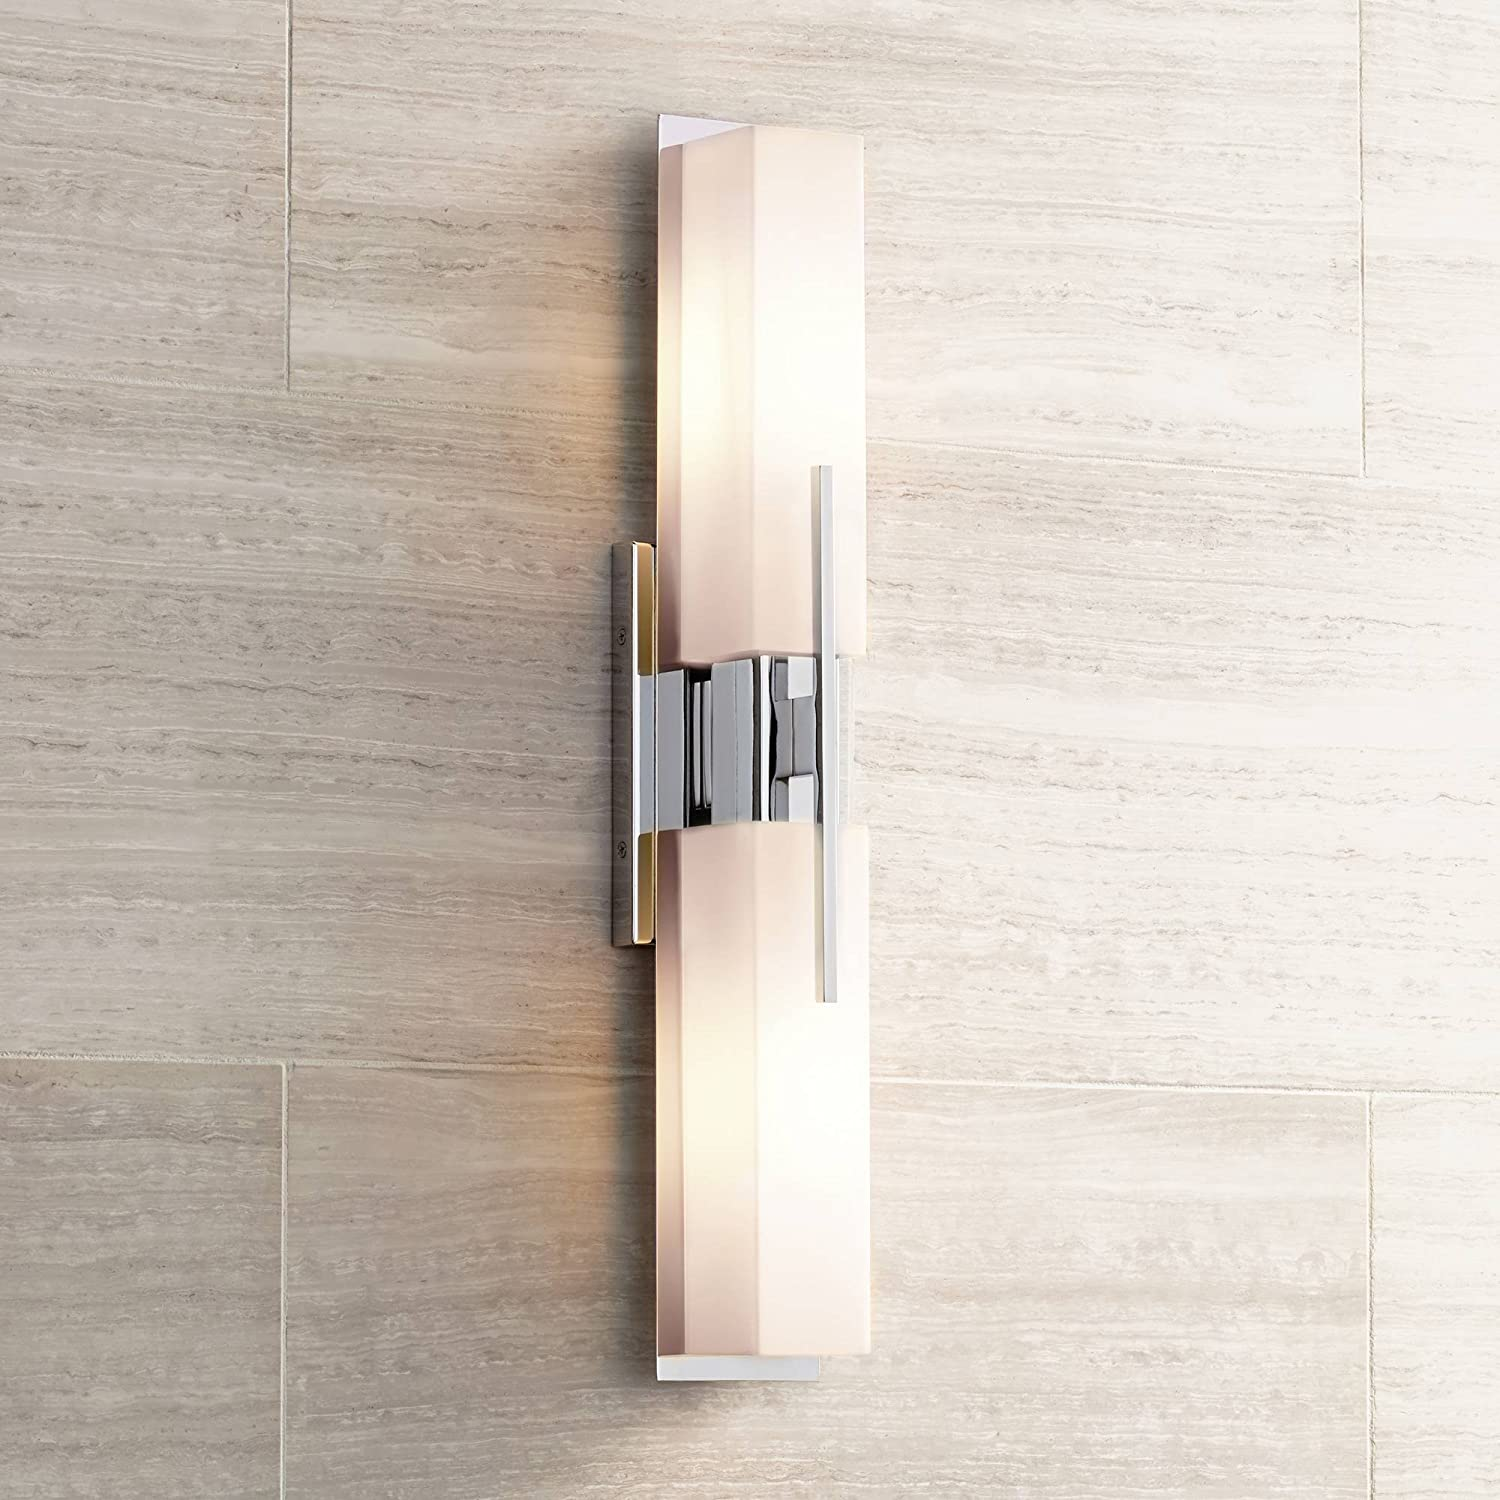 Midtown Modern Wall Light Chrome 23 1 2 White Glass Vanity Fixture for Bathroom Over Mirror – Possini Euro Design